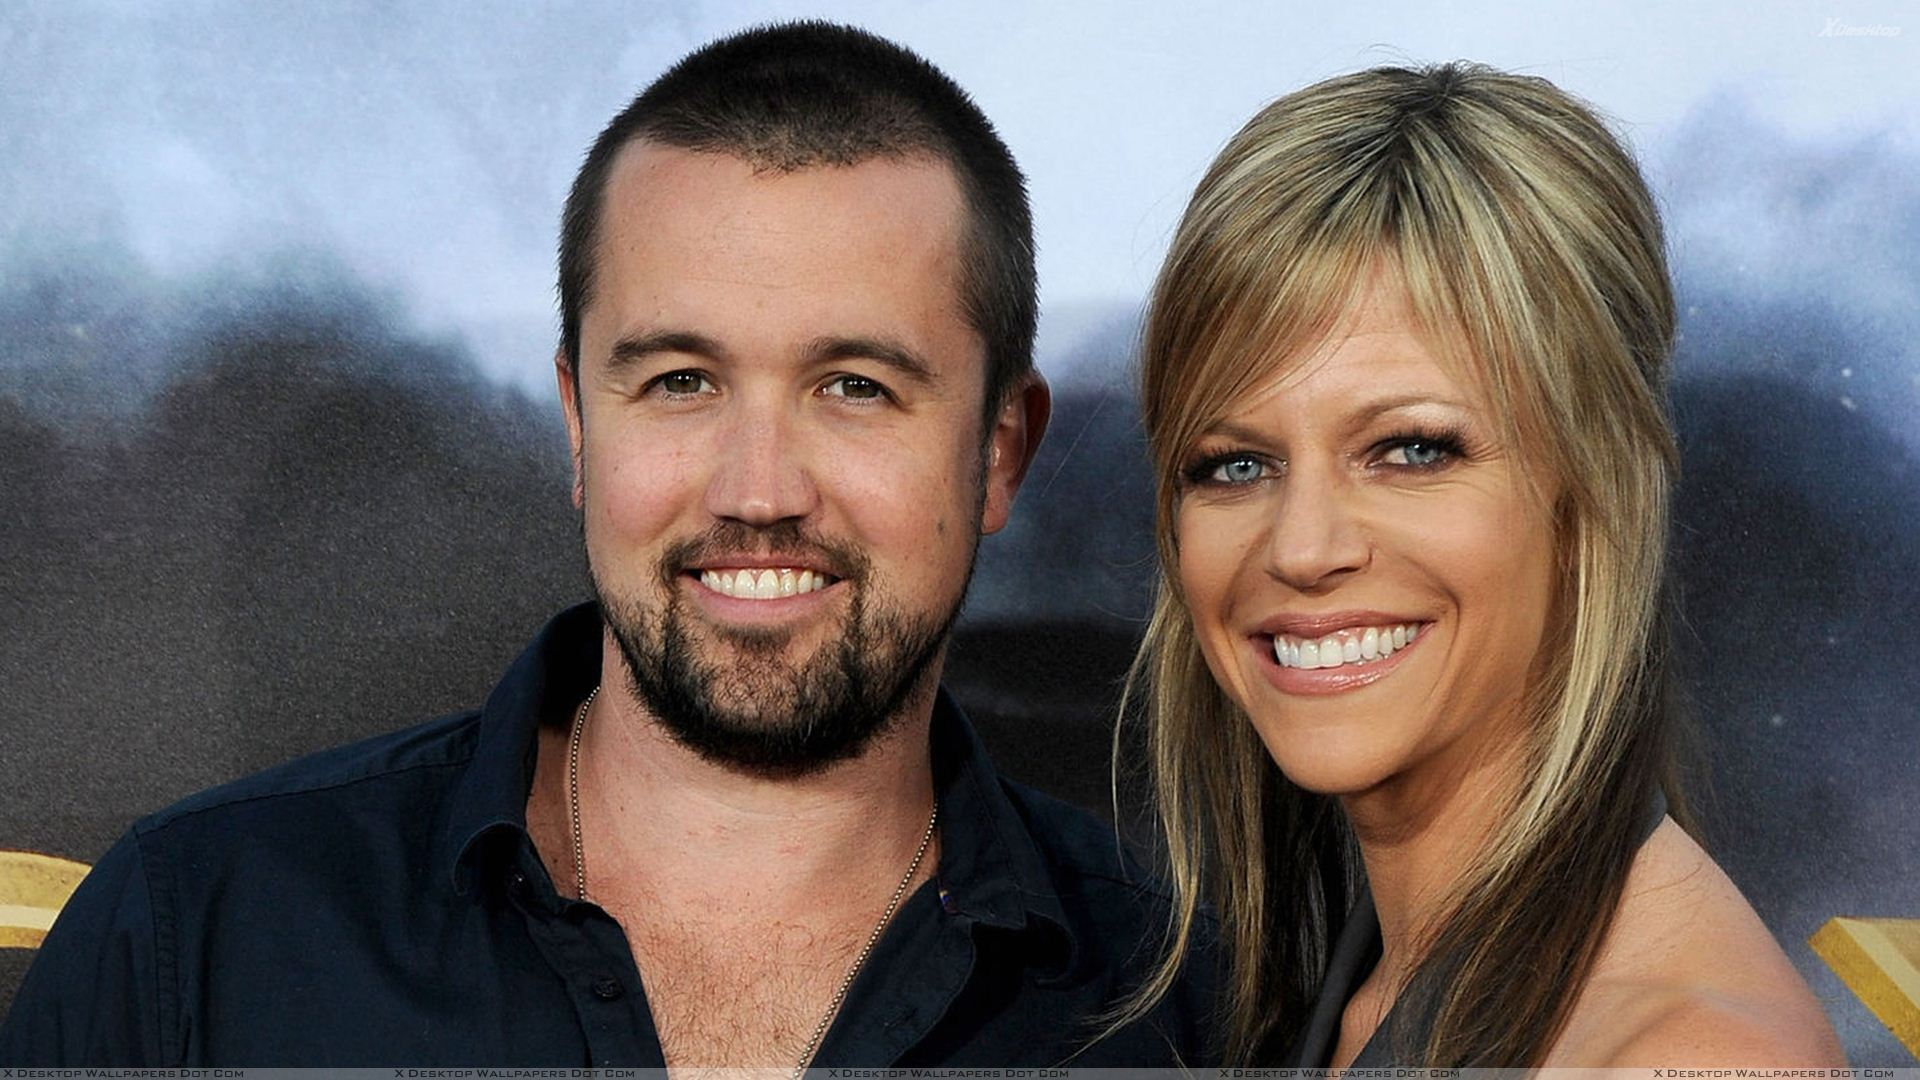 Rob Mcelhenney And Kaitlin Olson Smiling Photoshoot Wallpaper